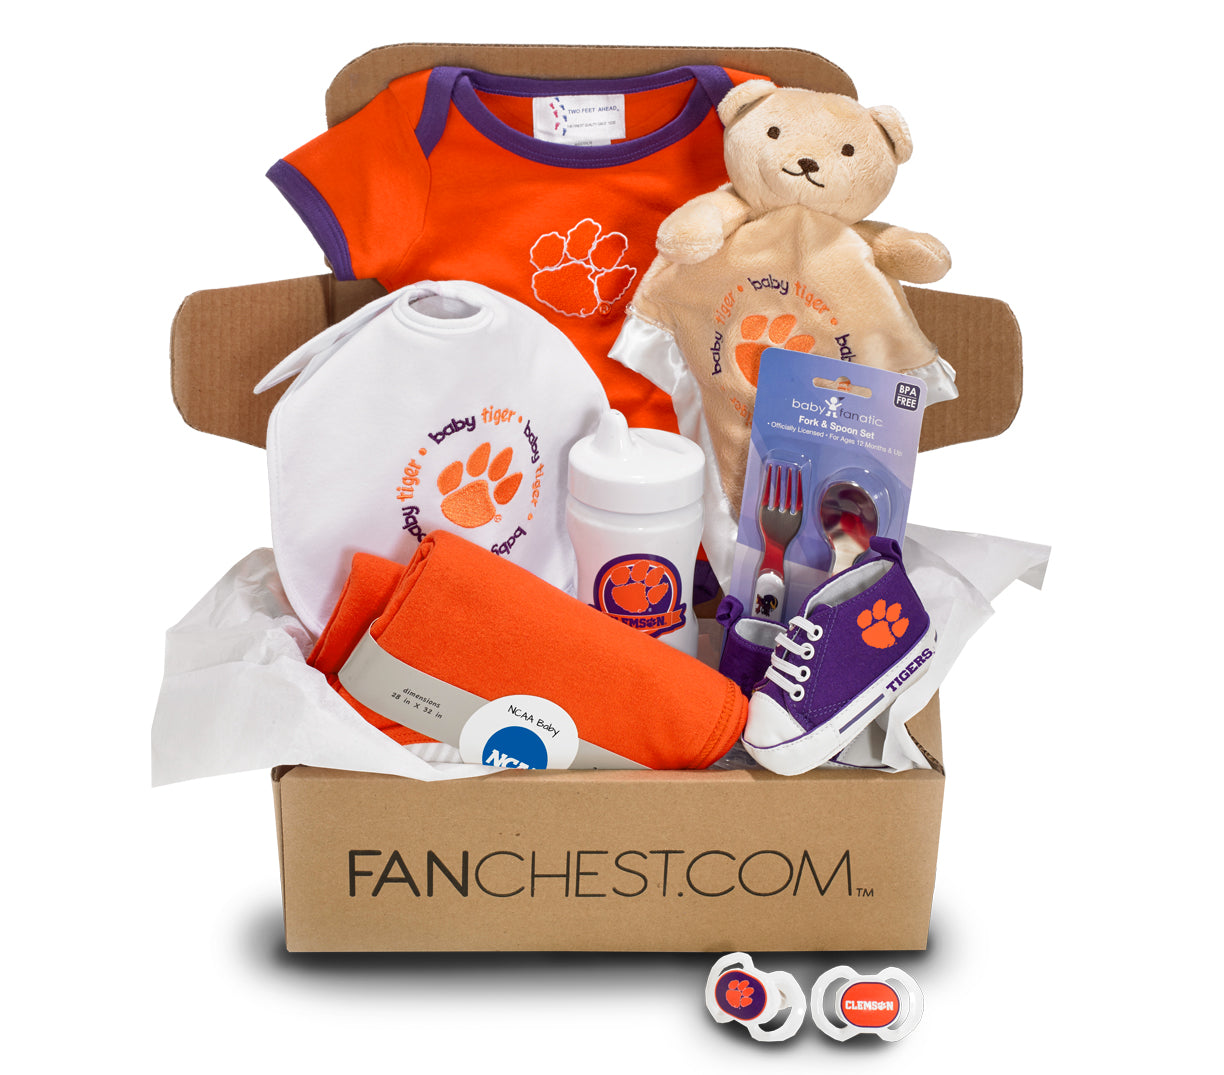 Clemson Baby Gift Box Clemson Infant Gear Fanchest